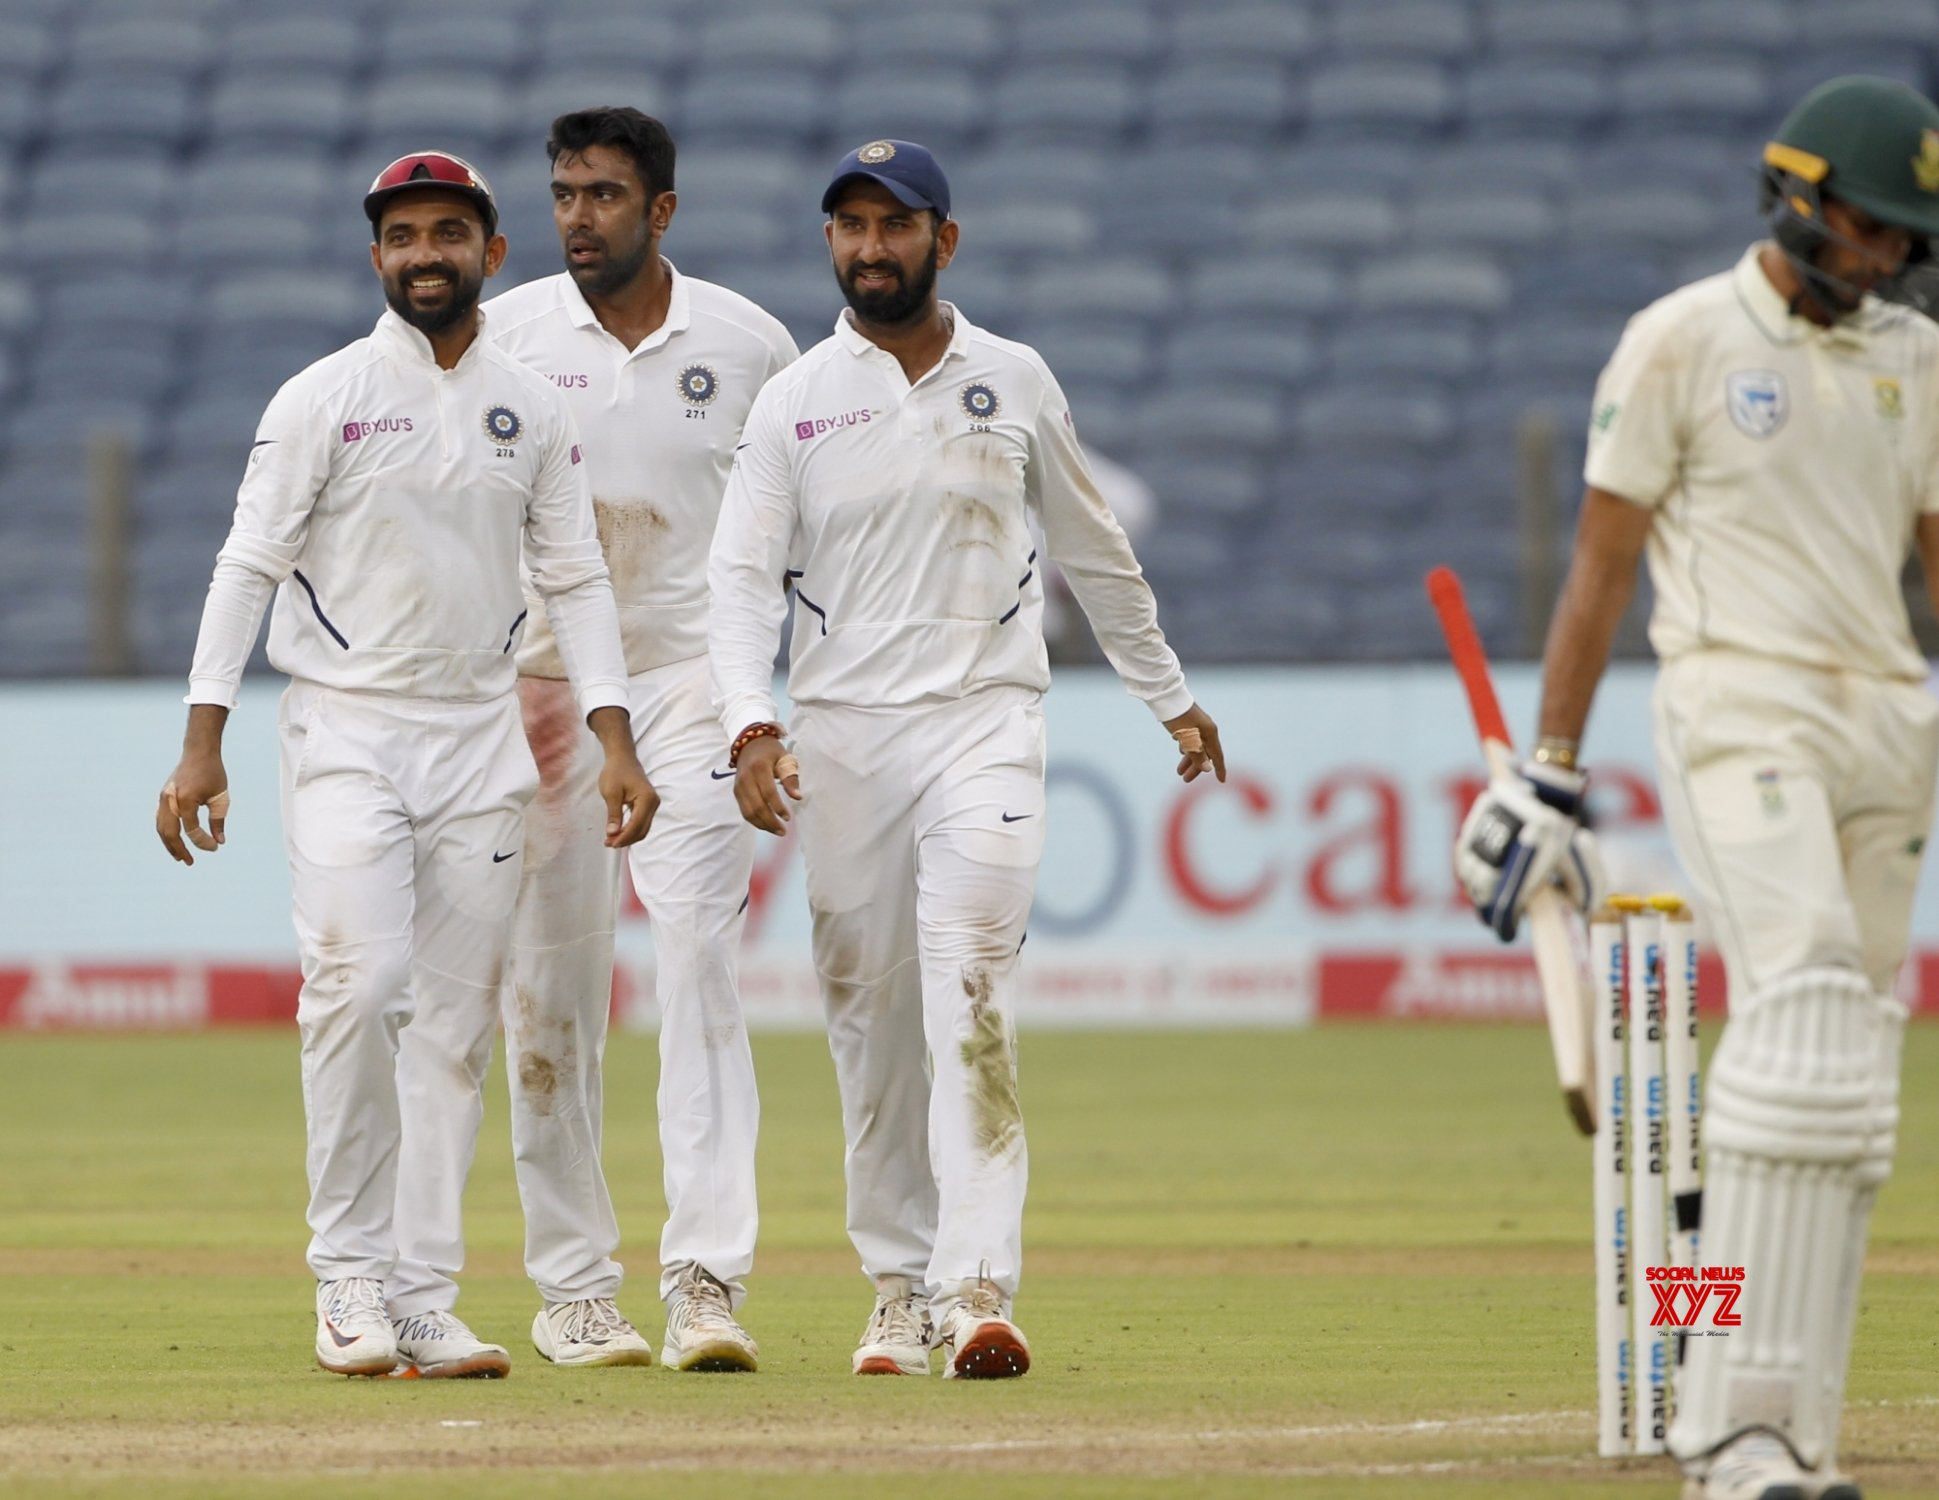 Pune: 2nd Test - India Vs South Africa - Day 3 (Batch - 21) #Gallery